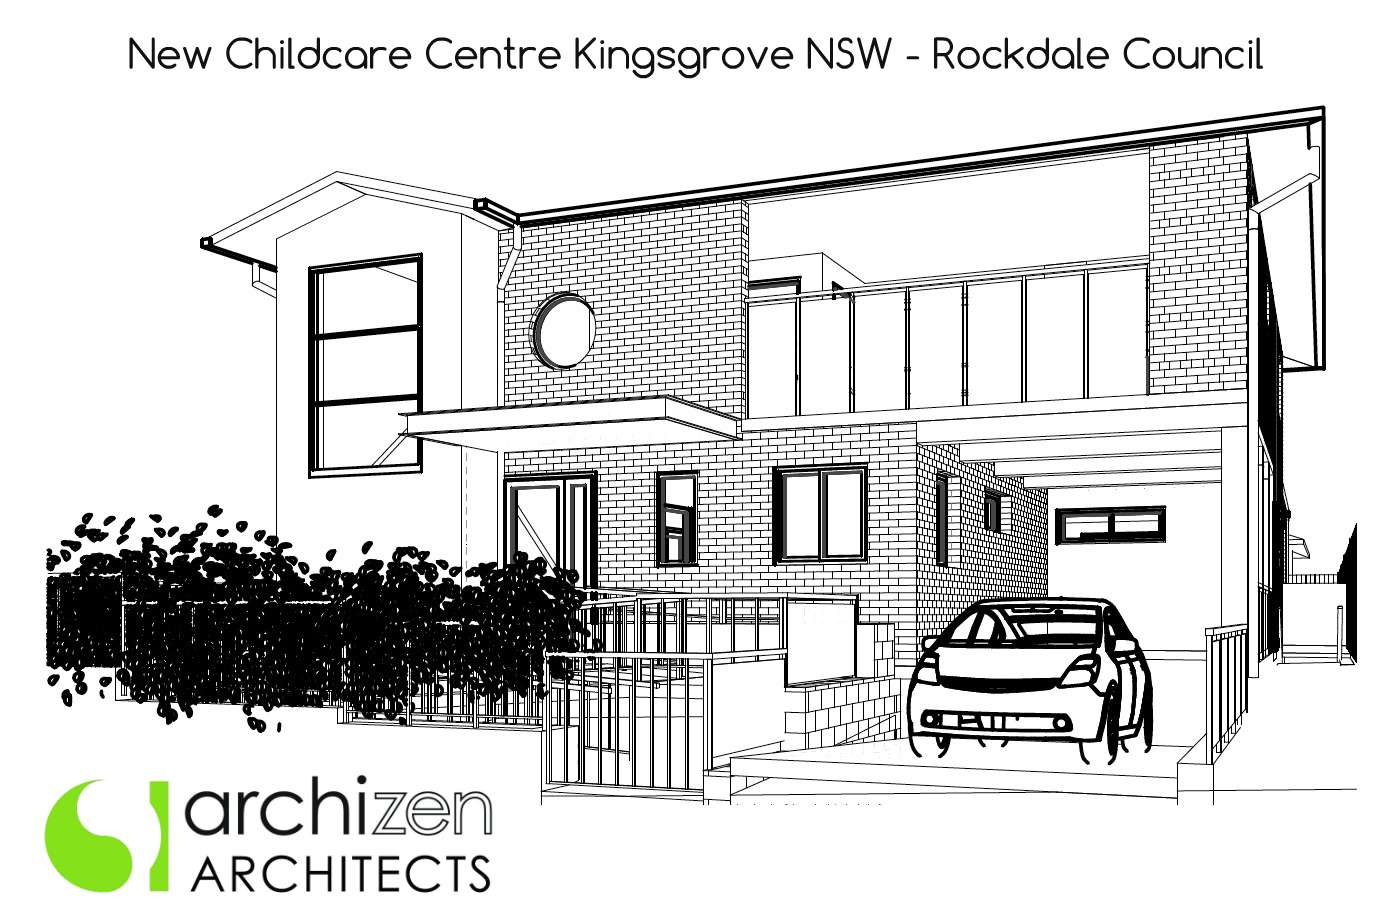 Archizen Architects New Childcare Centre Kingsgrove Rockdale Council Pre Schools Early learning Centre Education architectural design Sydney Melbourne Perth Adelaide Brisbane